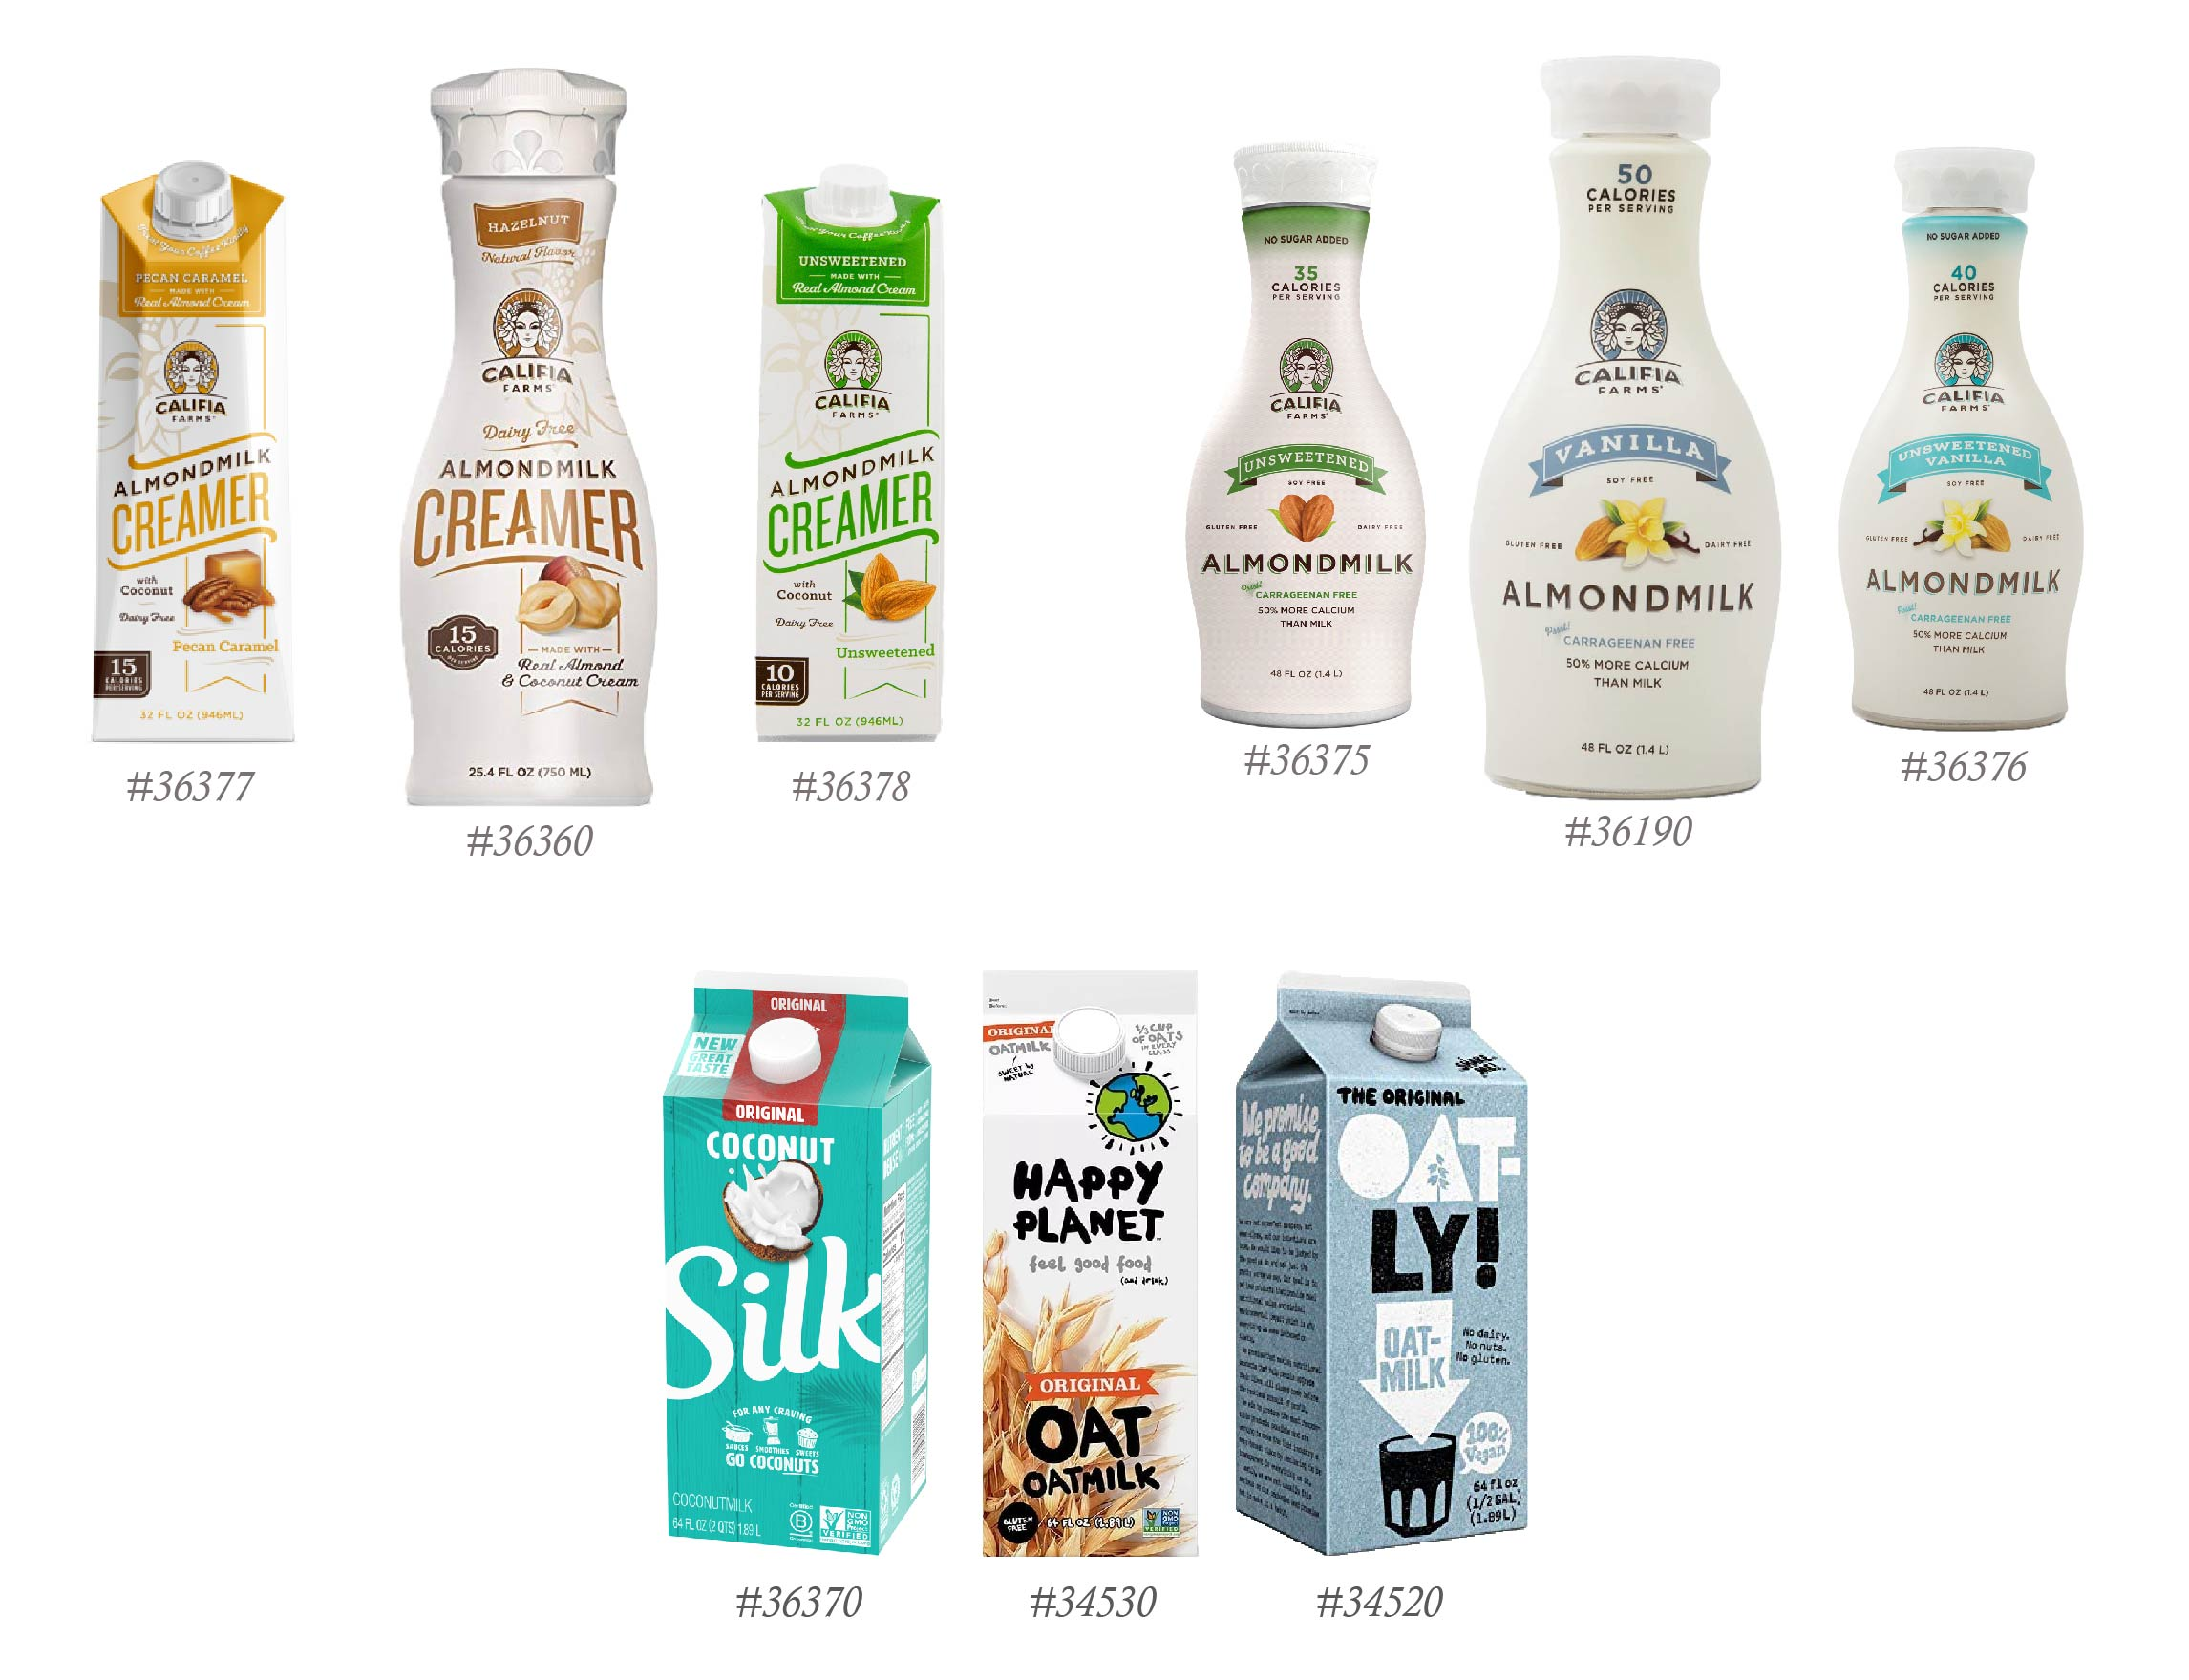 Plant-based milk alternatives such as Califia, Oatly, Silk, and Happy Planet.